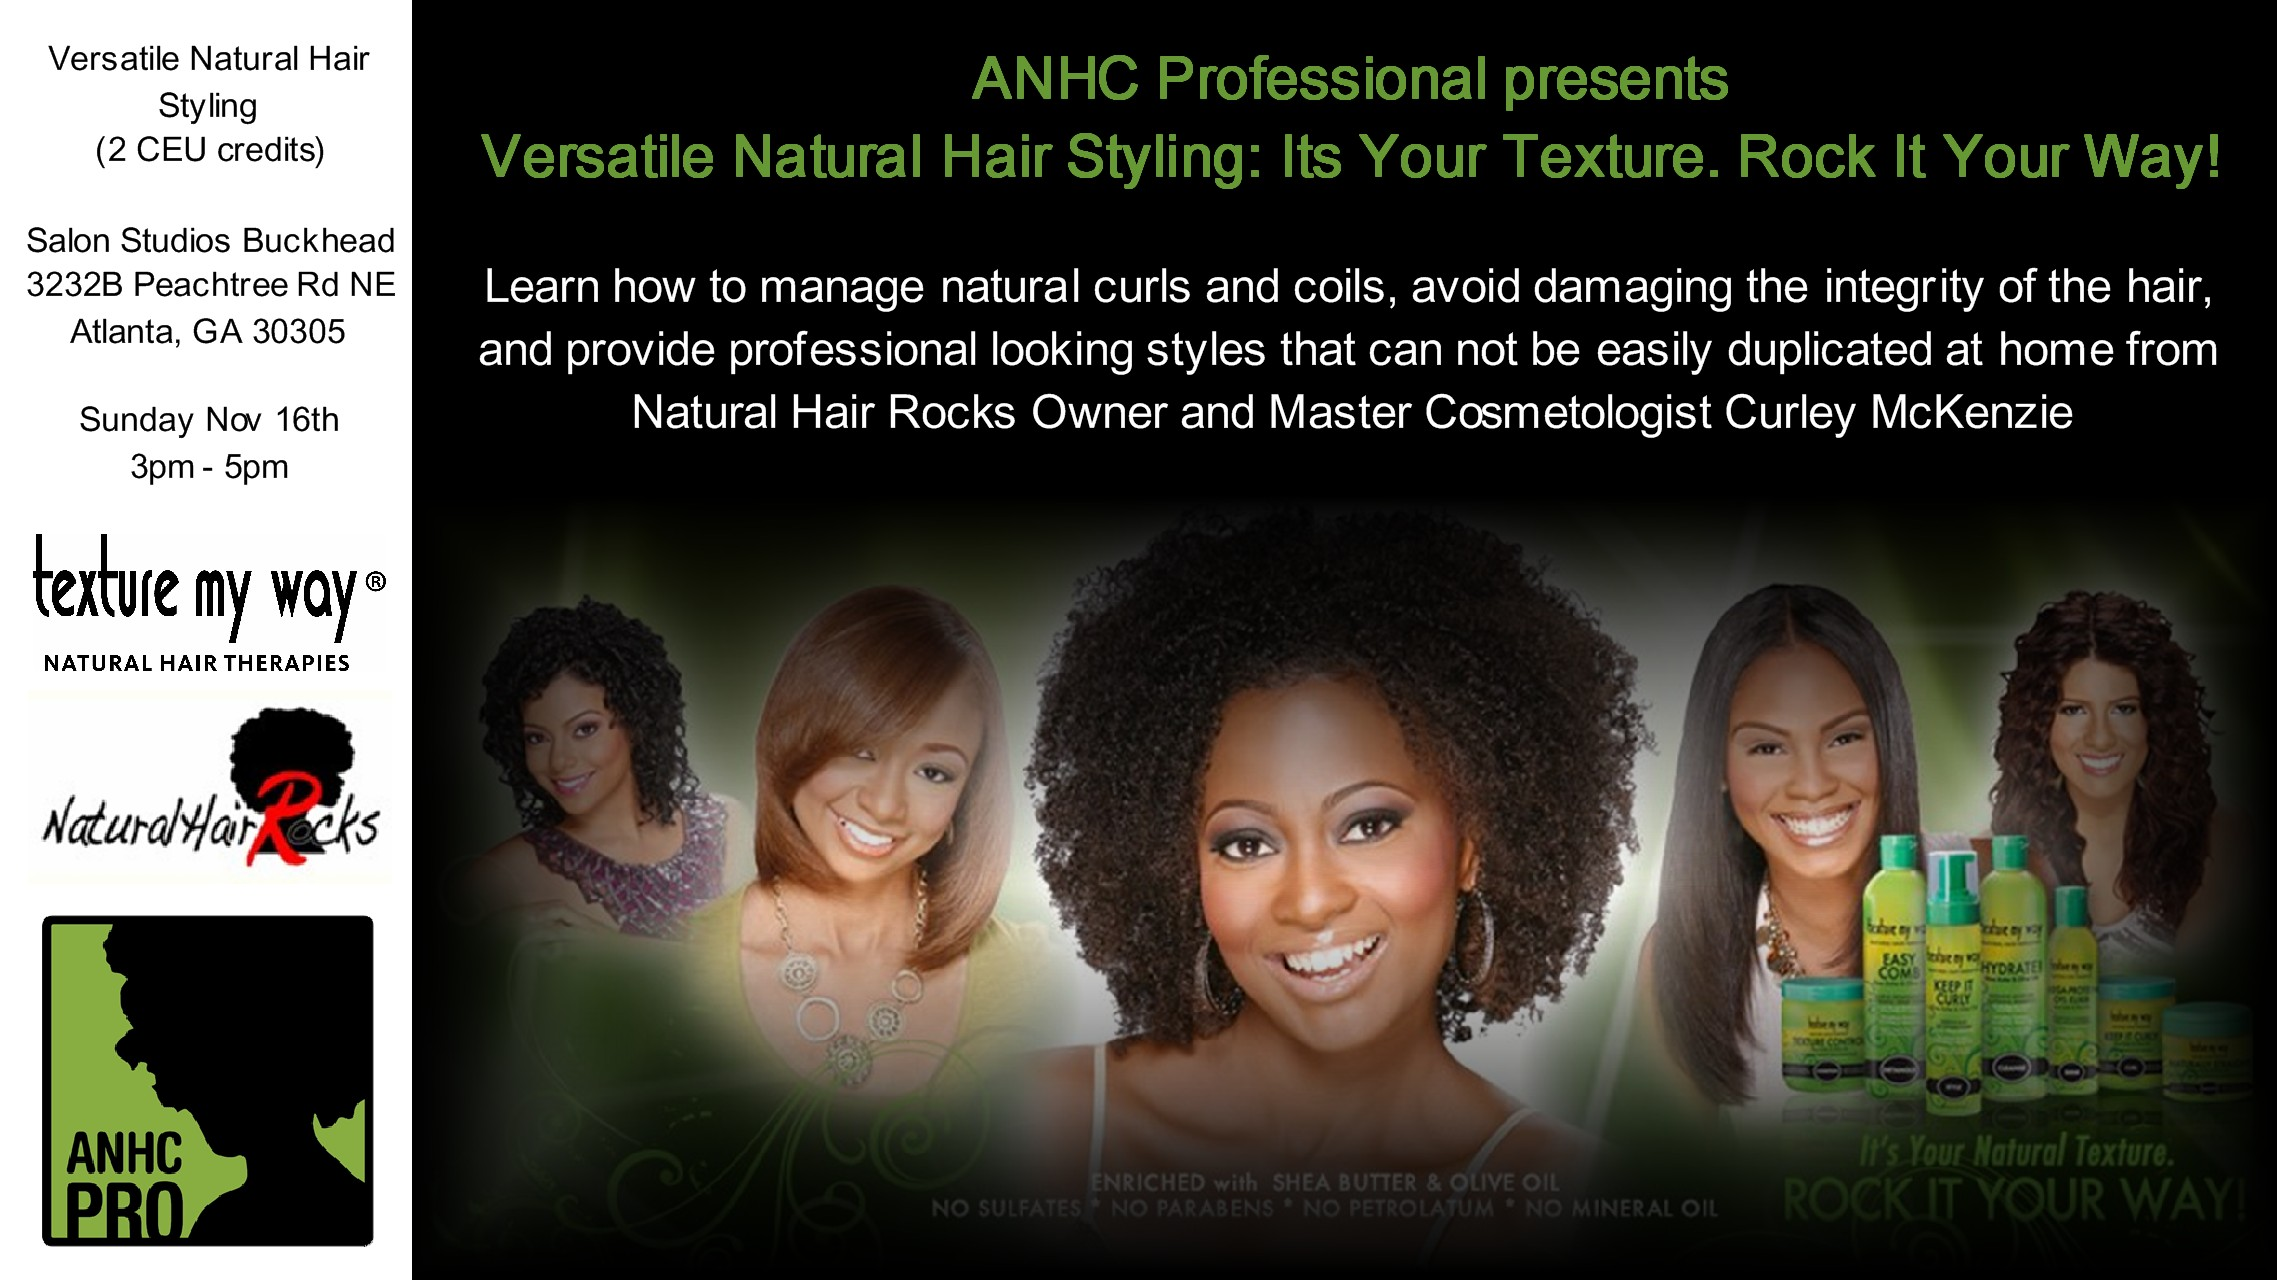 Versatile Natural Hair Styling